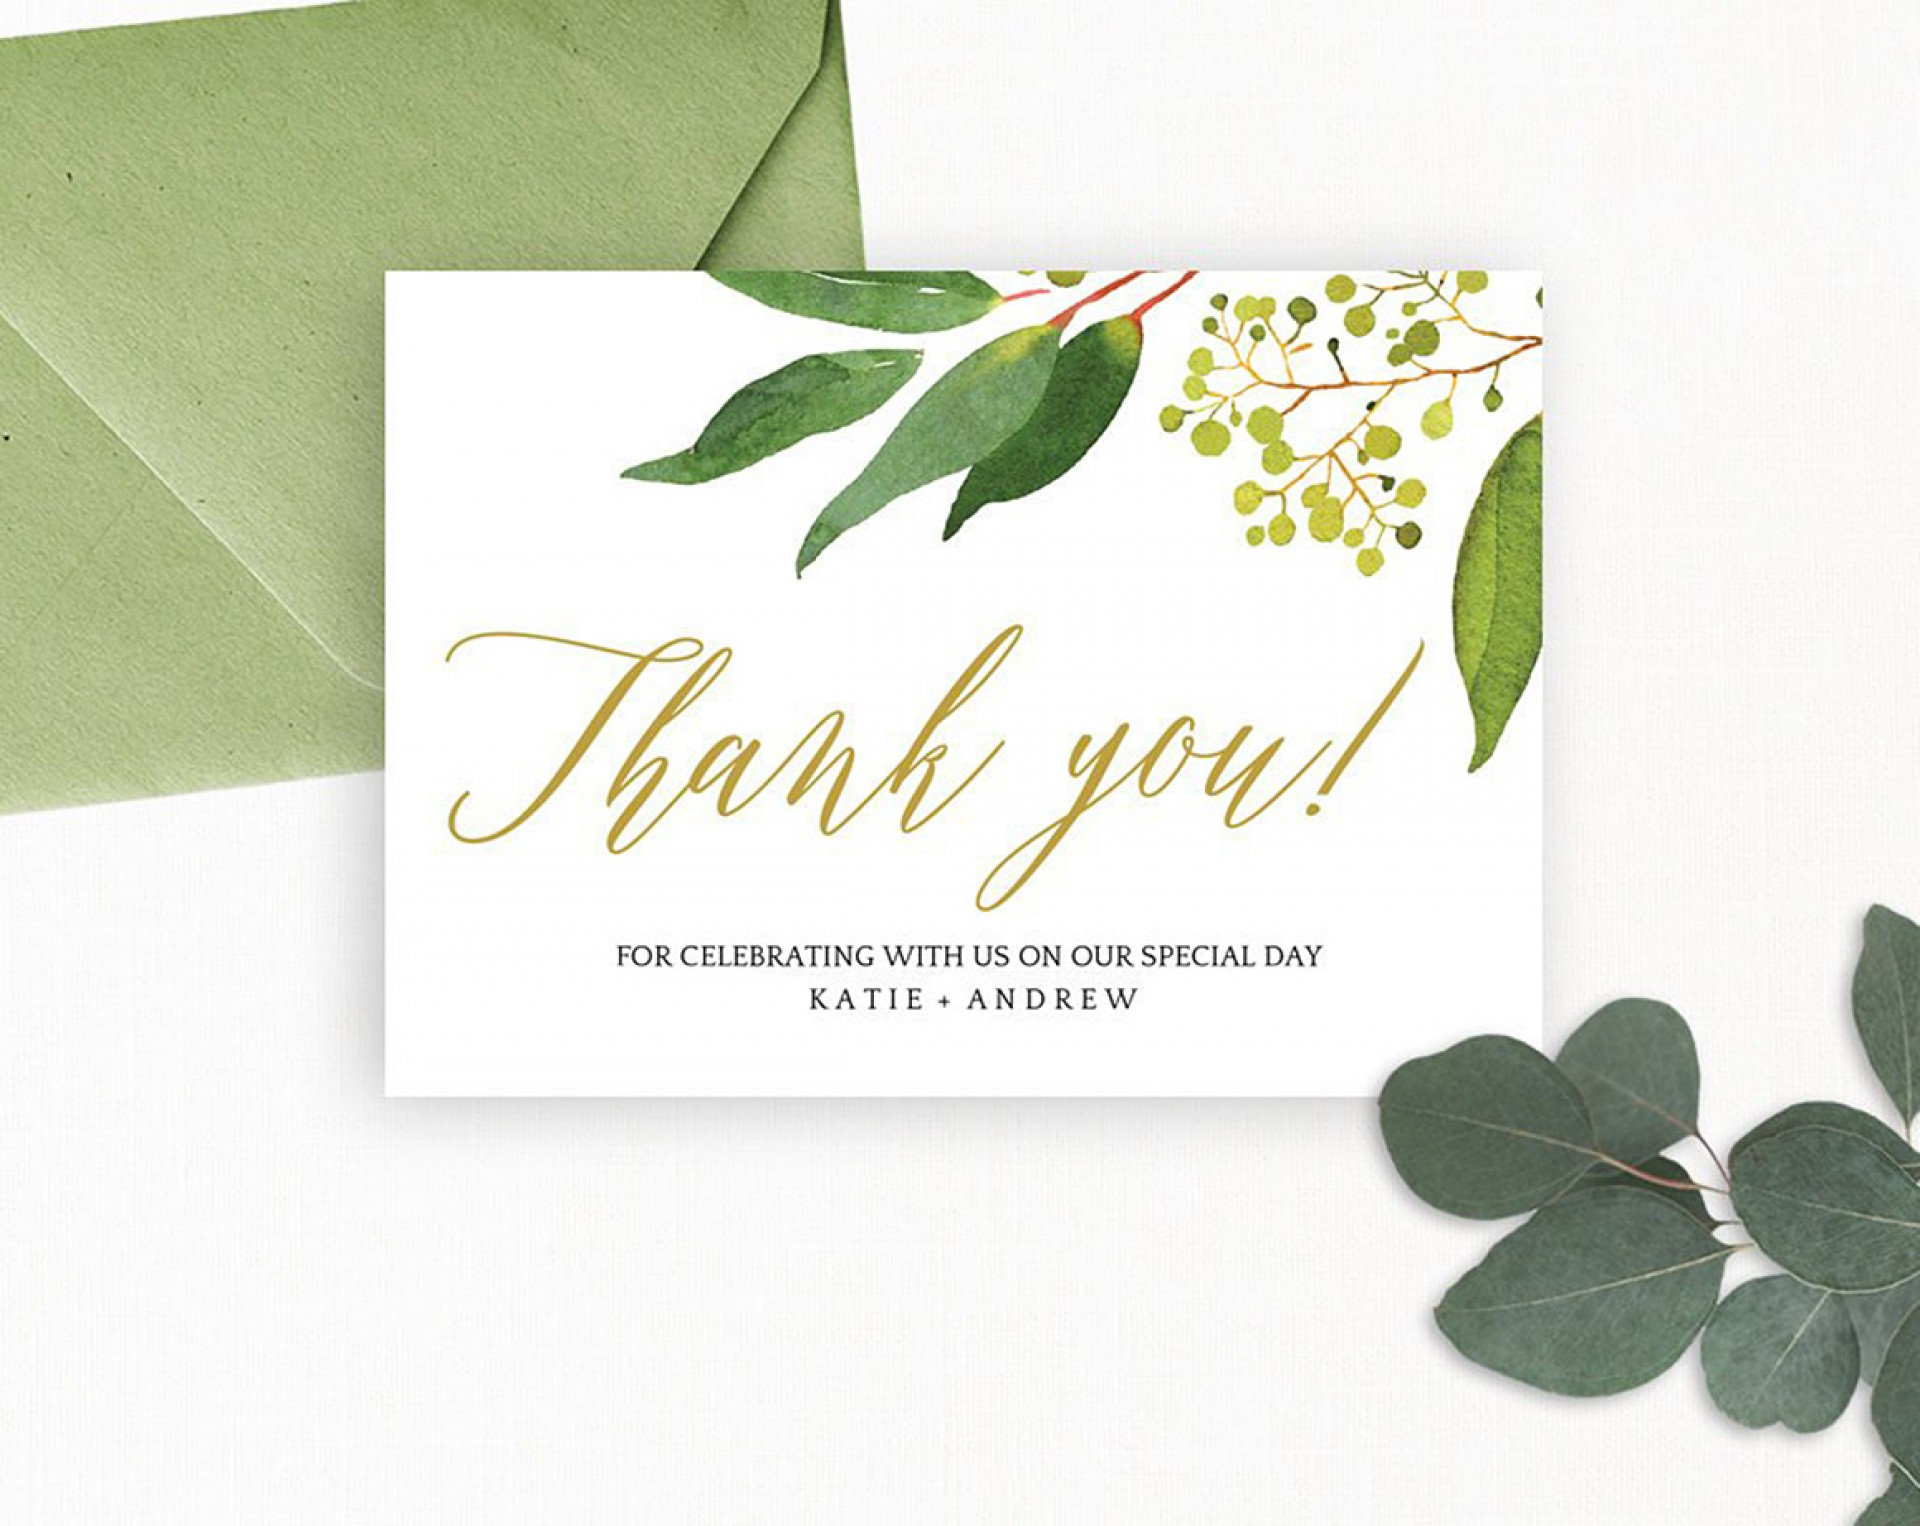 008 Stupendou Thank You Card Template Wedding High Definition  Free Printable Publisher1920